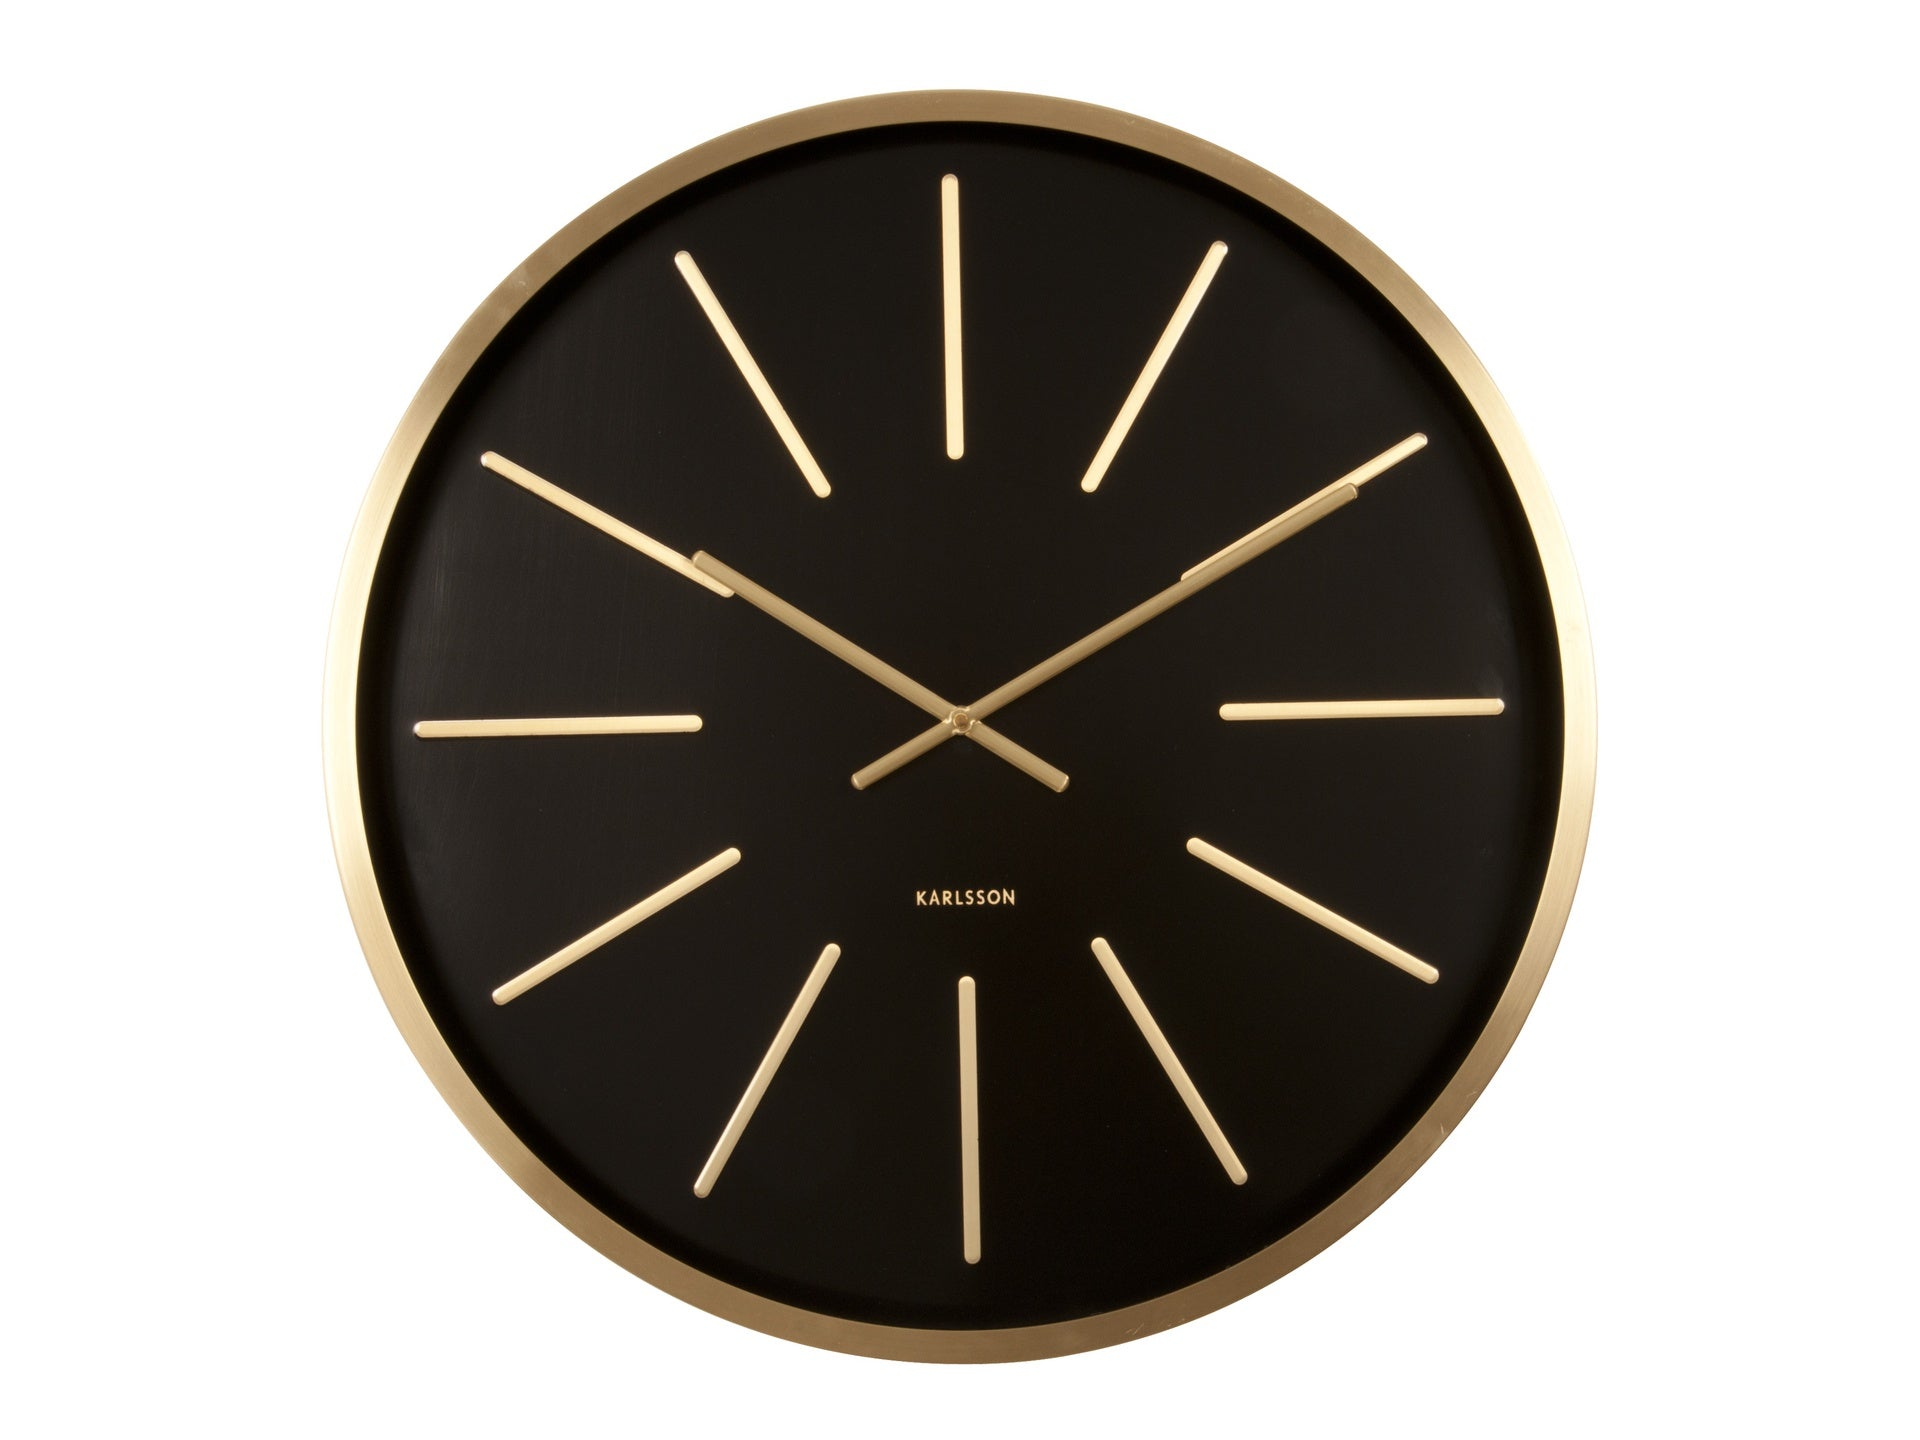 Maxiemus Karlsson Wall Clock